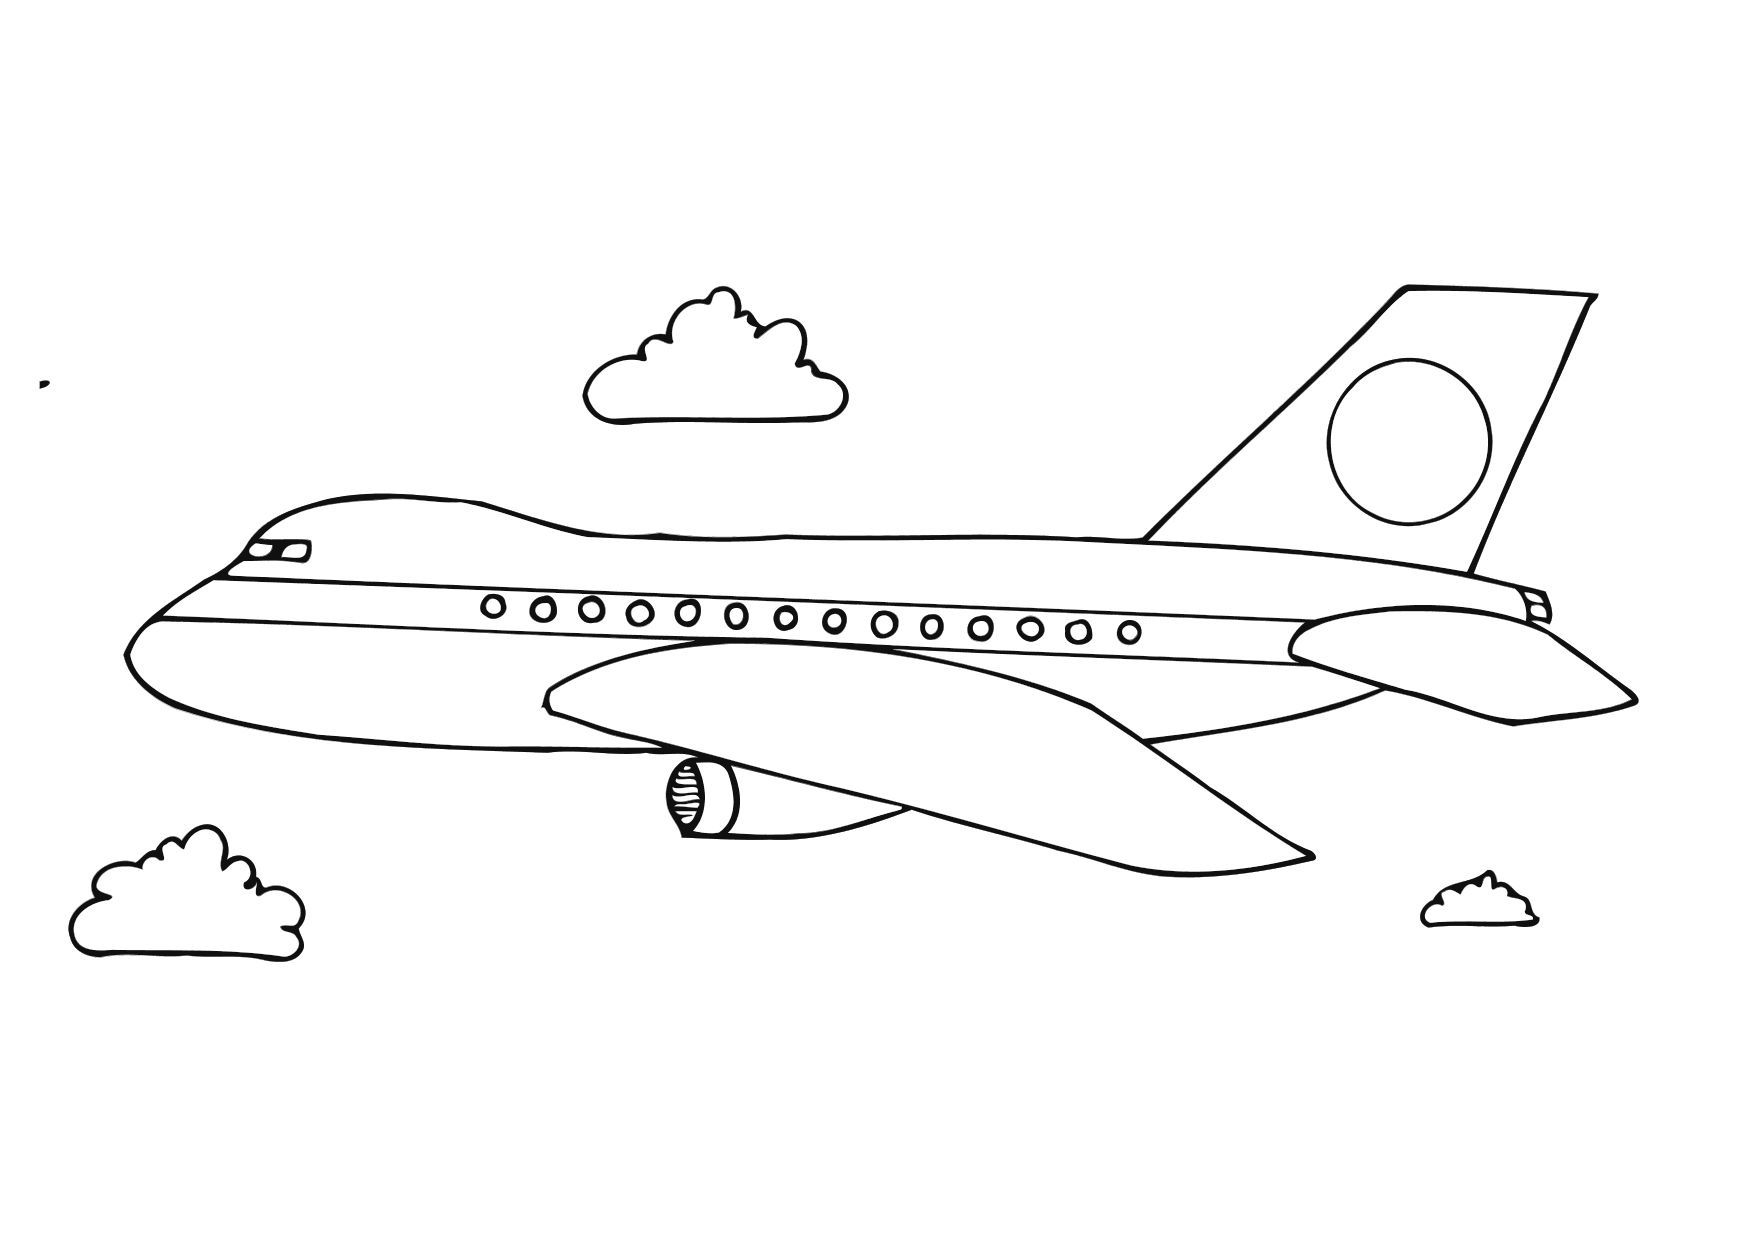 image regarding Airplane Printable referred to as Cost-free Printable Plane Coloring Internet pages For Small children